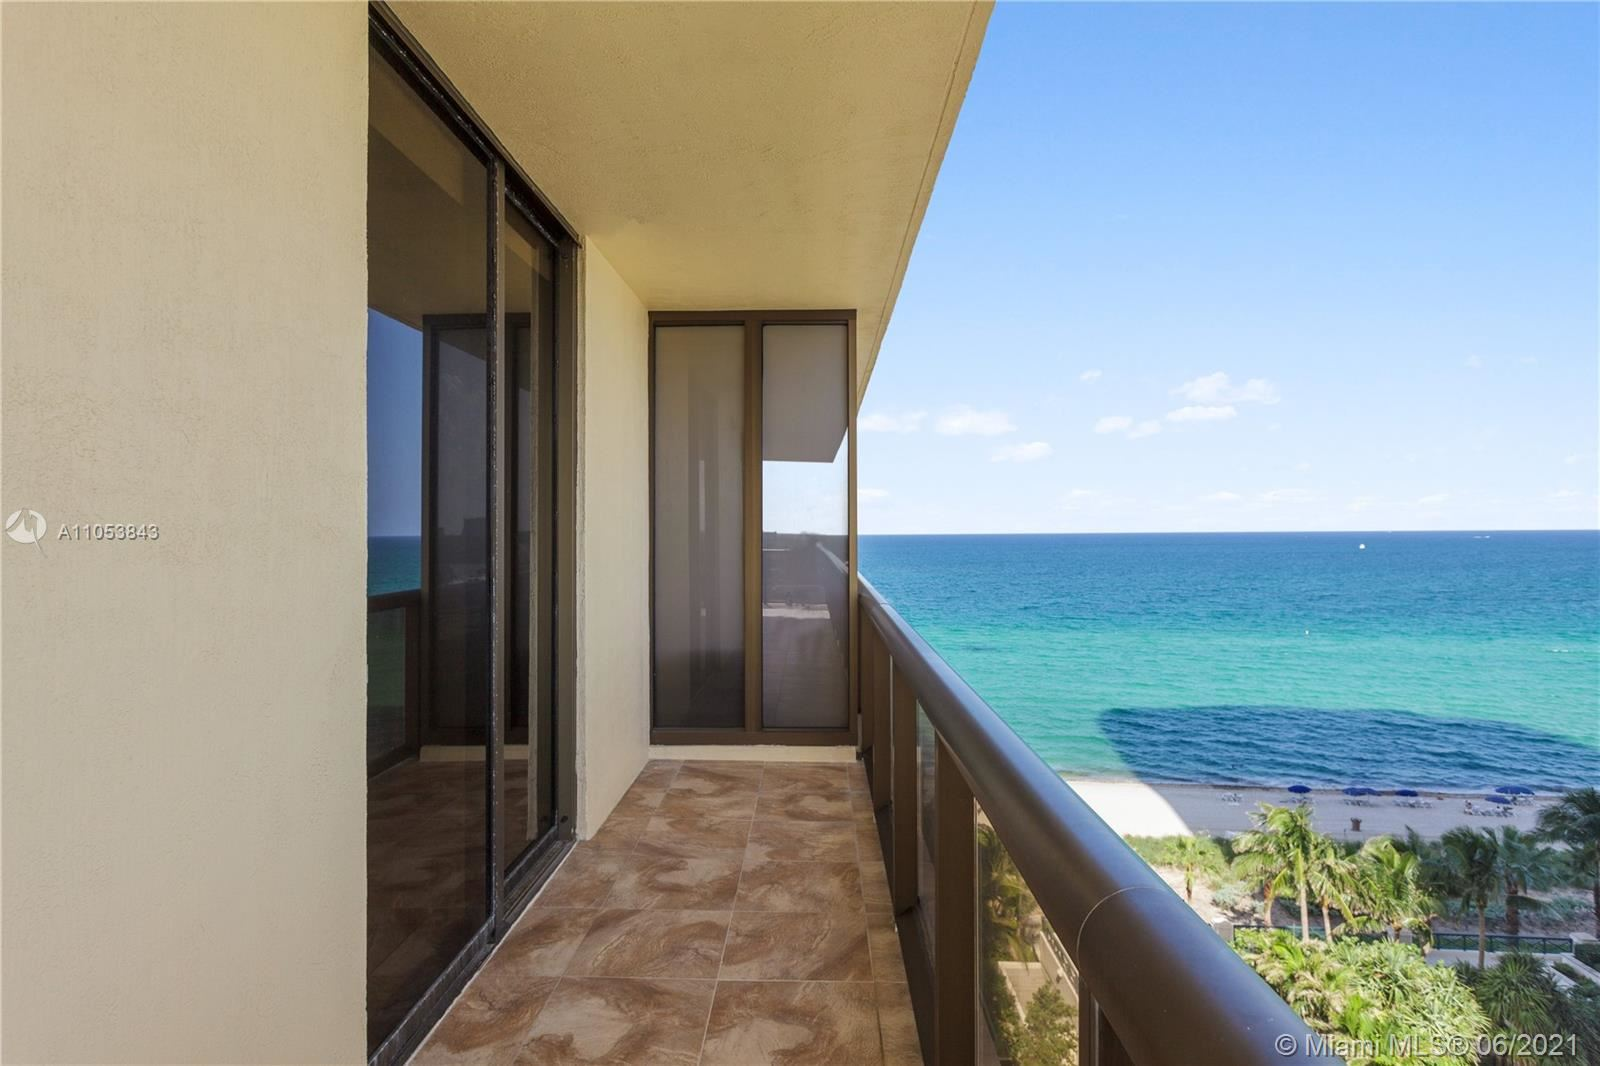 16275 Collins Ave #904, Sunny Isles, FL 33160 - #: A11053843